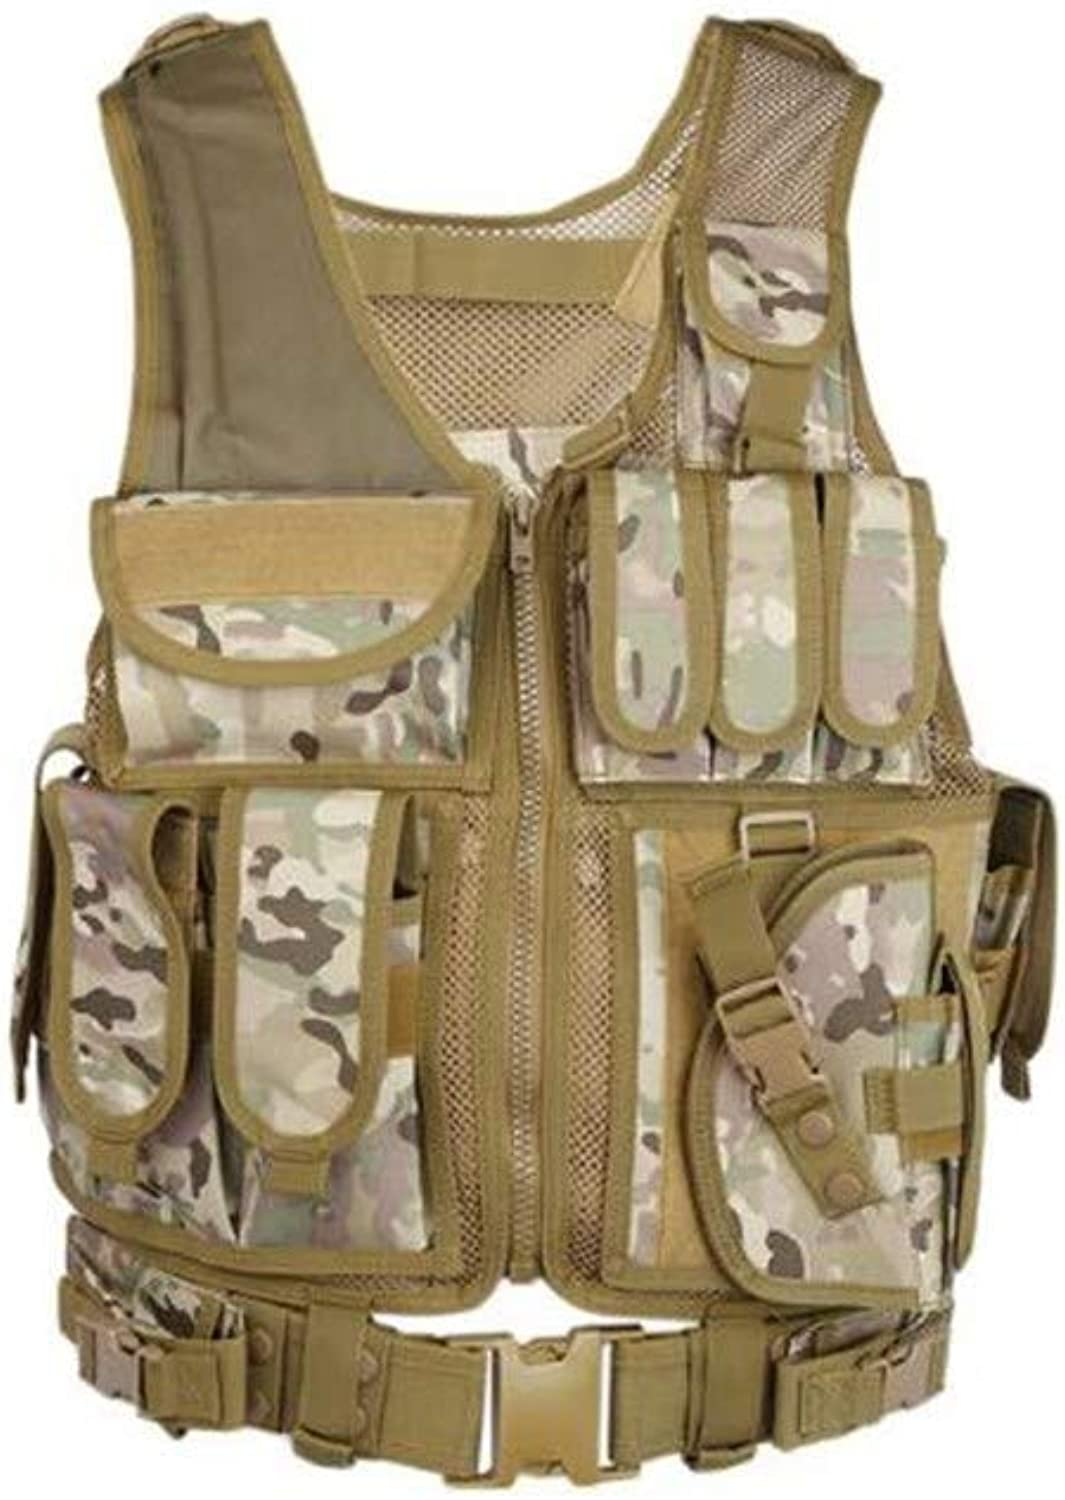 Leoie Tactical Swat Black Combat Vest Special Force Military Hunting Gear with Holster